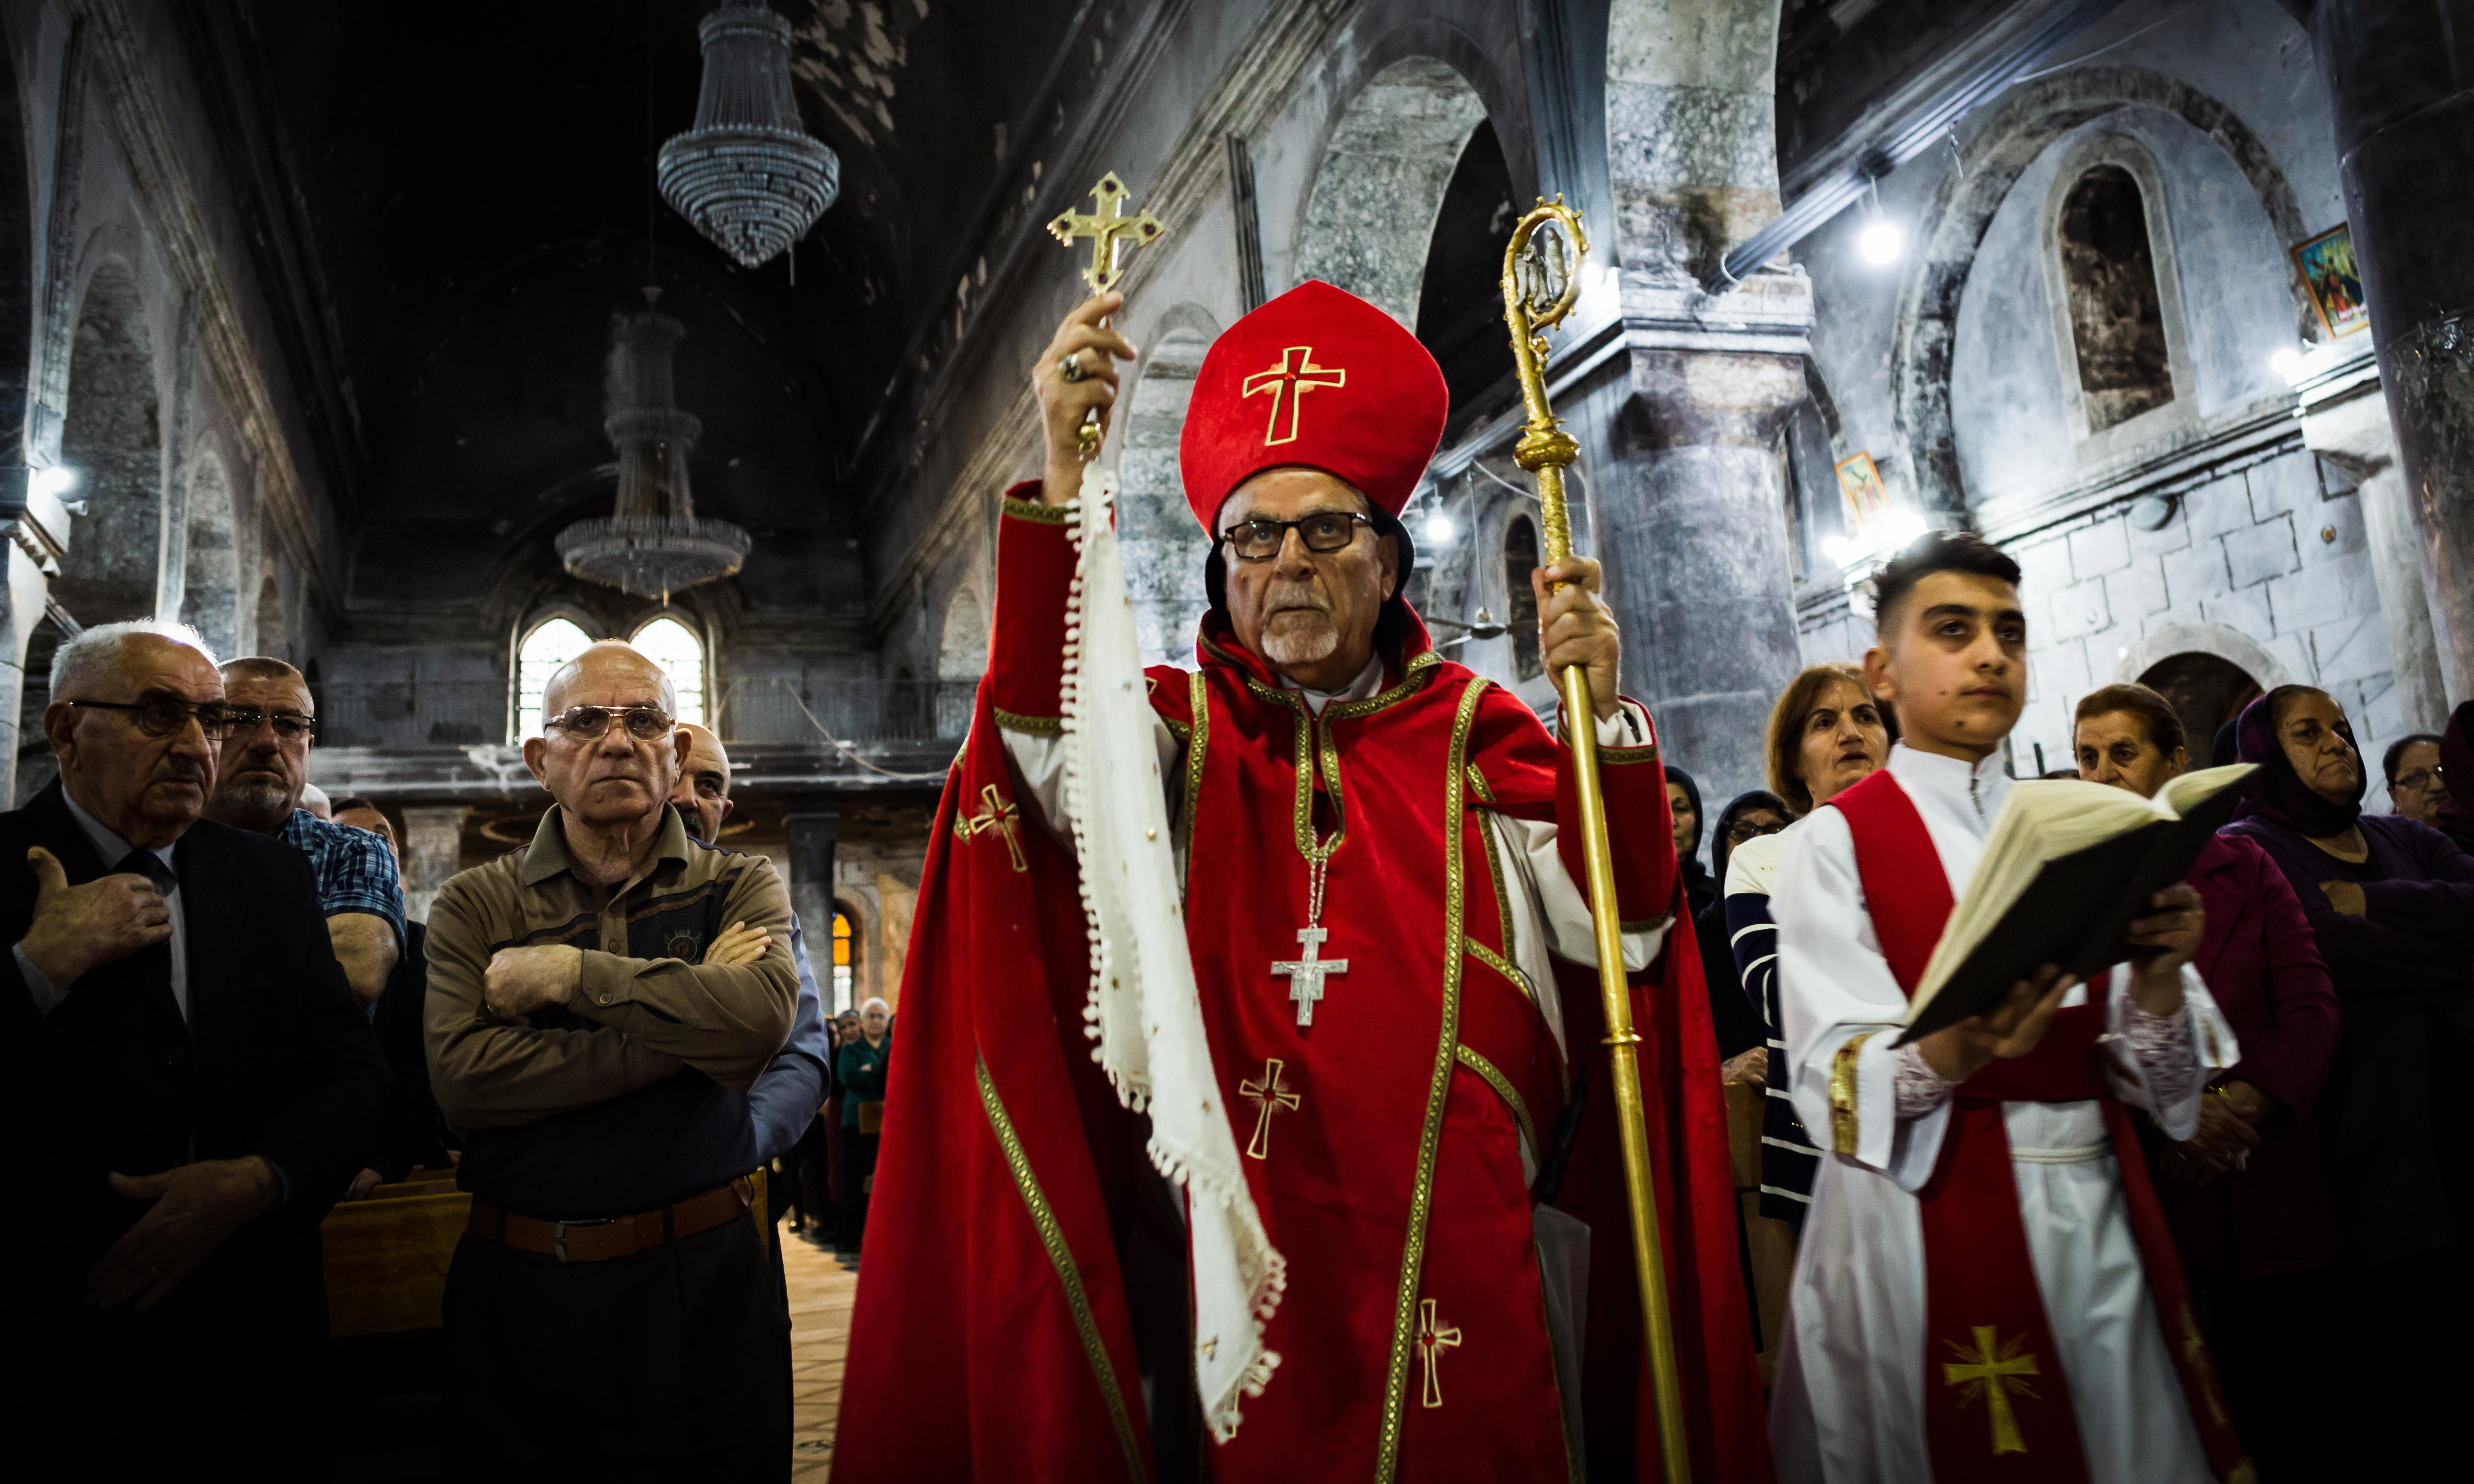 Iraq's oldest Christian town celebrates Easter without Isis